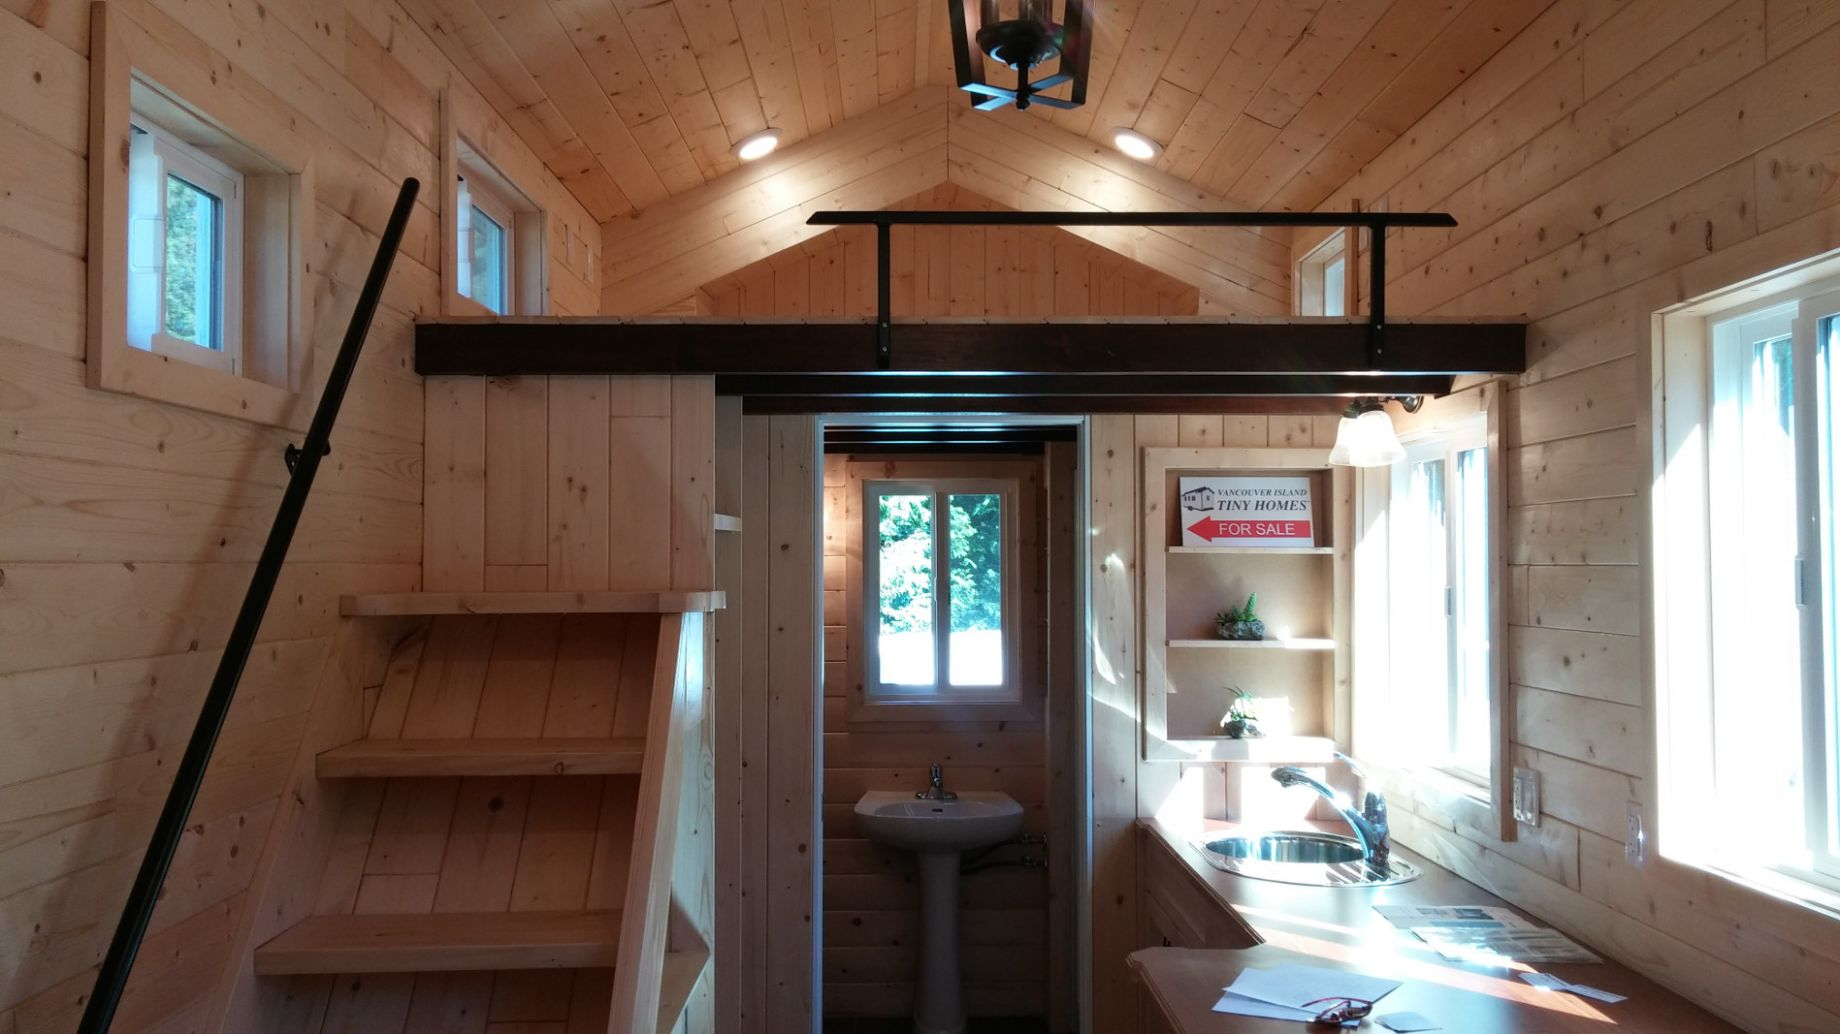 Vancouver Island Tiny Homes - Welcome